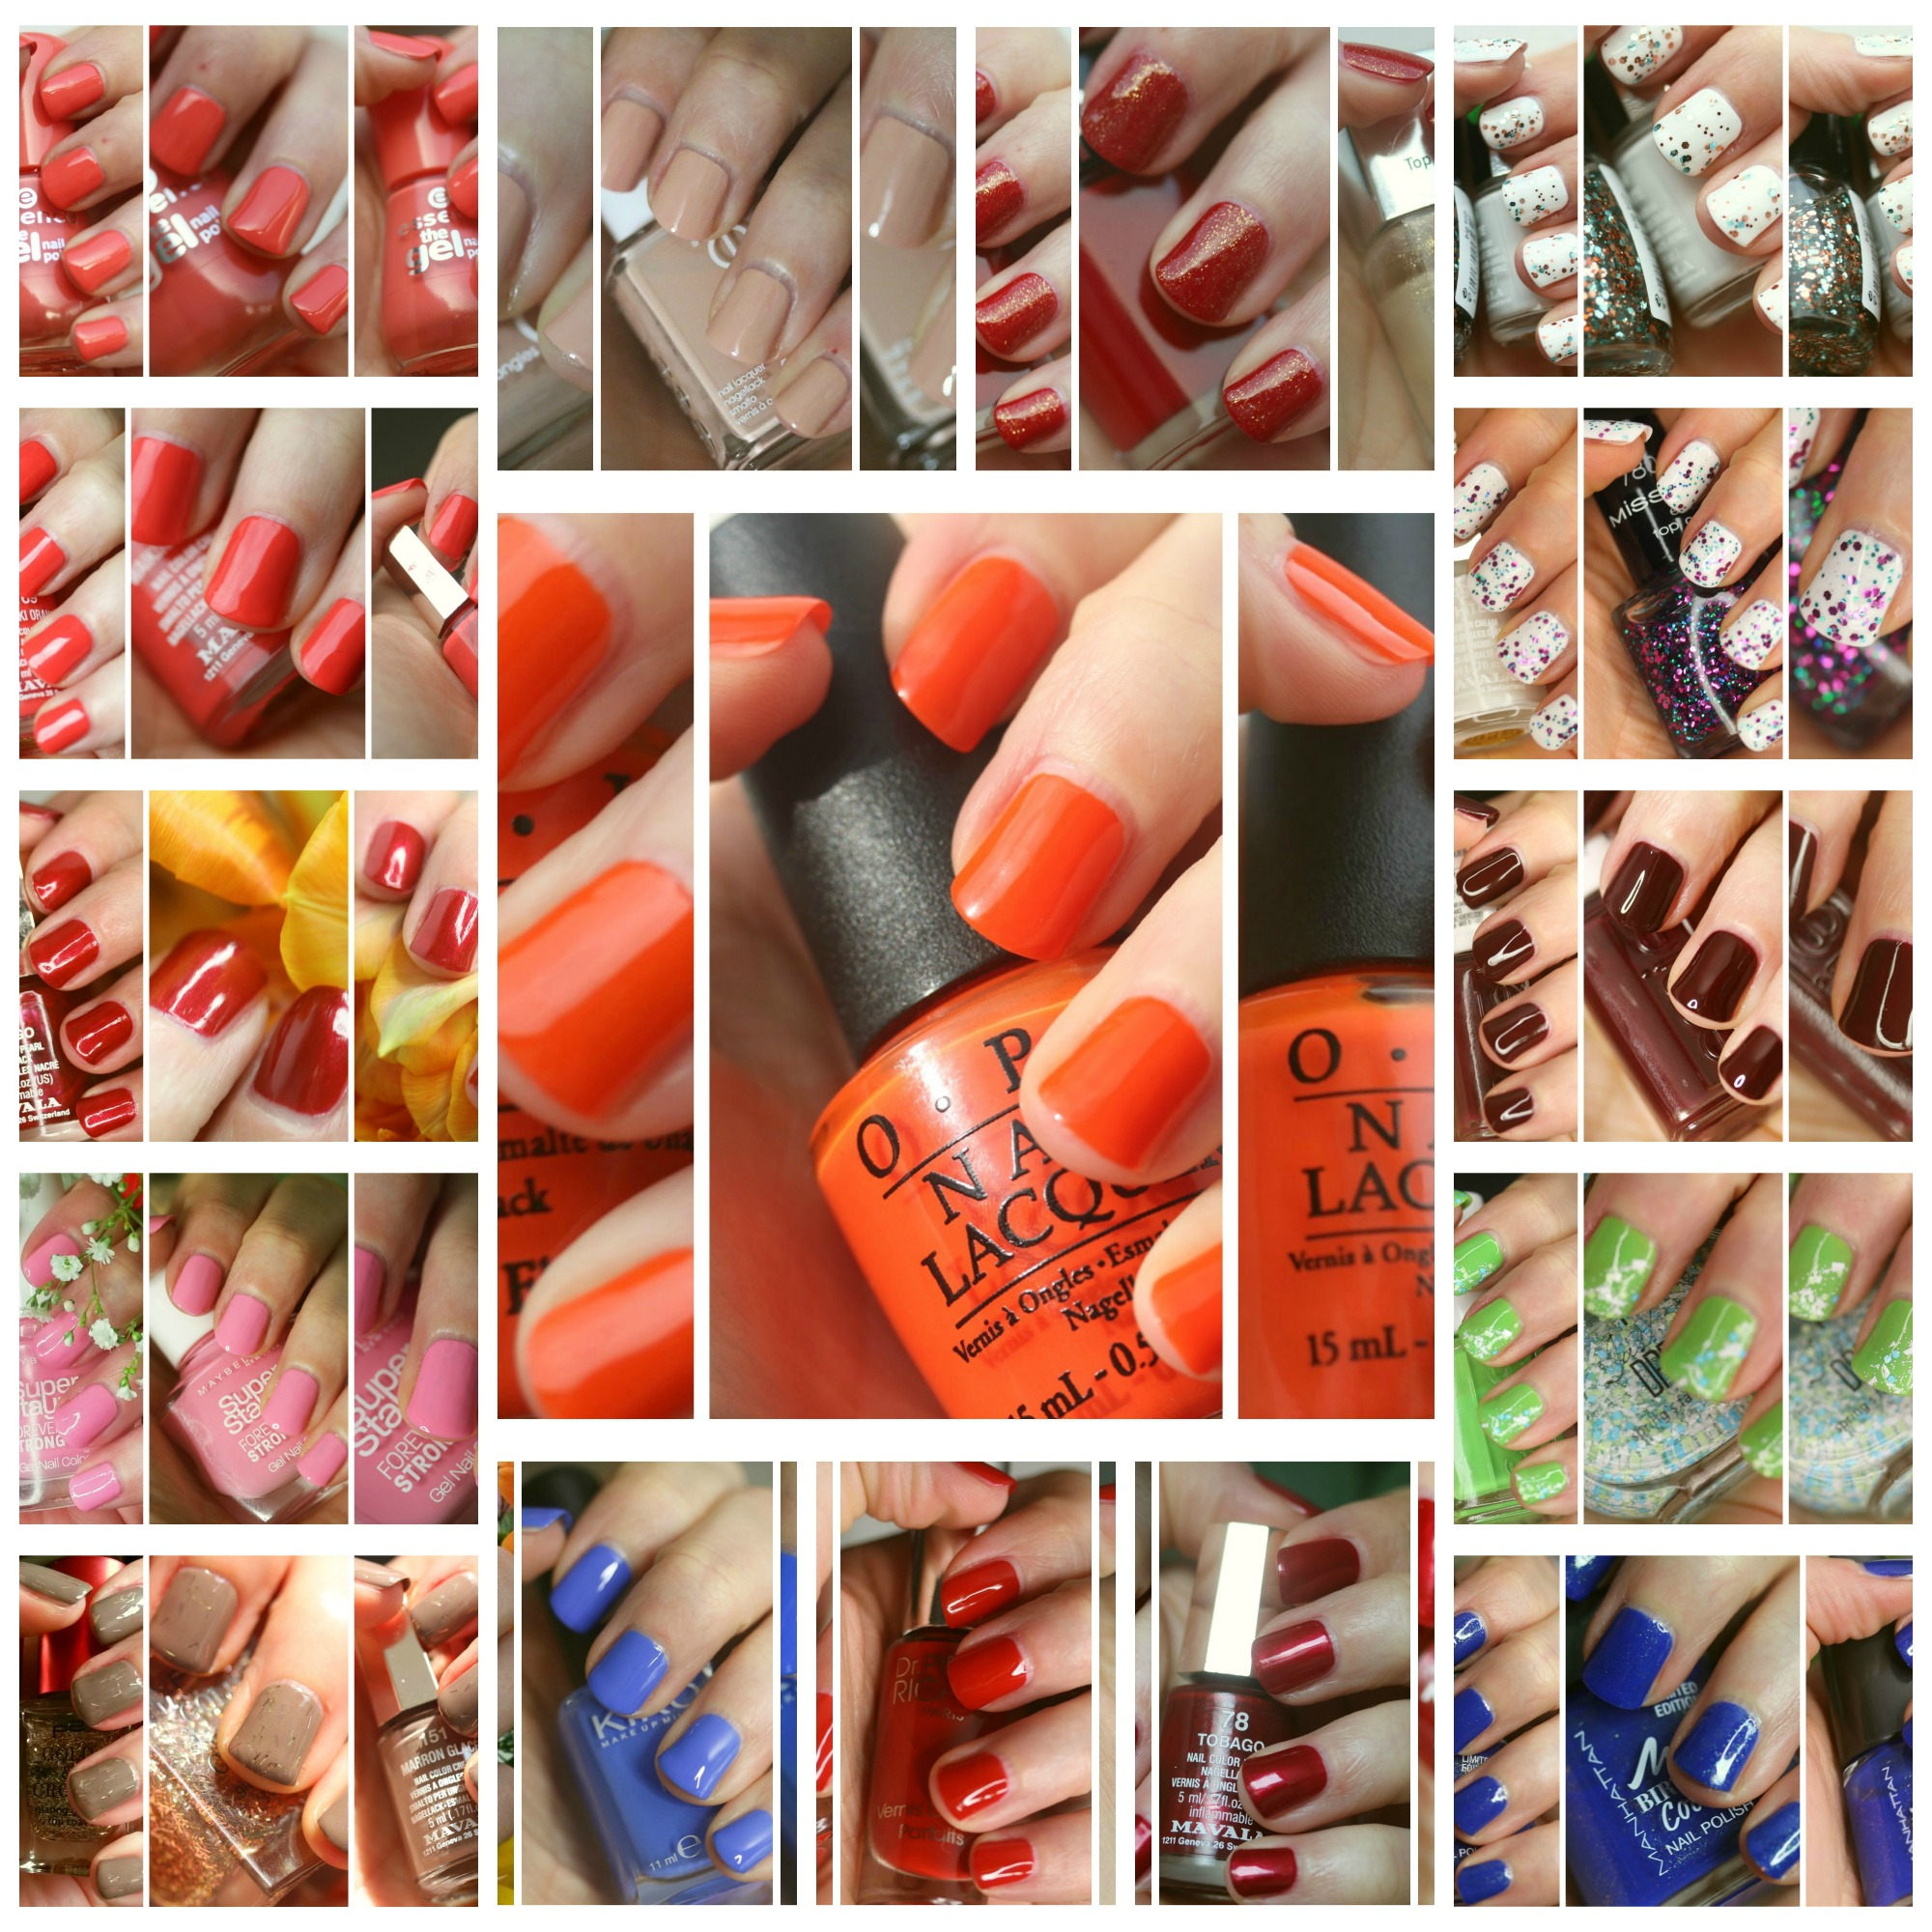 Monthly Nails: March + April 2015